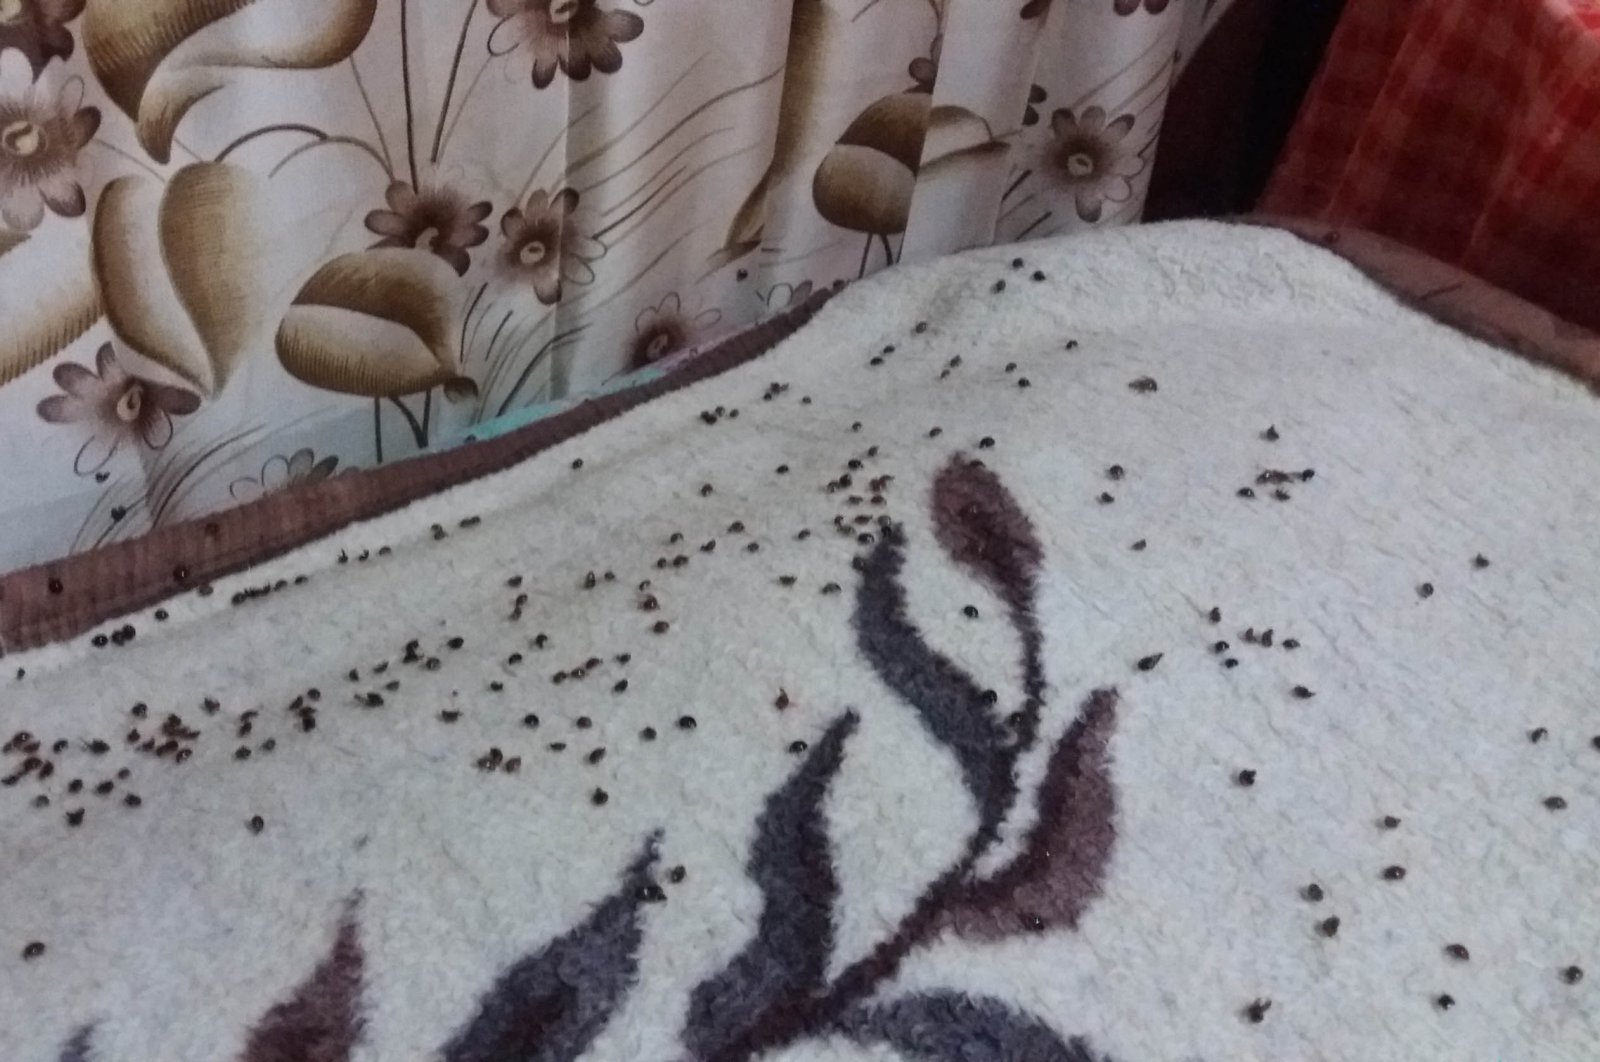 A group of ladybugs in a house in northeastern Turkey's Rize, Dec. 3, 2020. (DHA Photo)